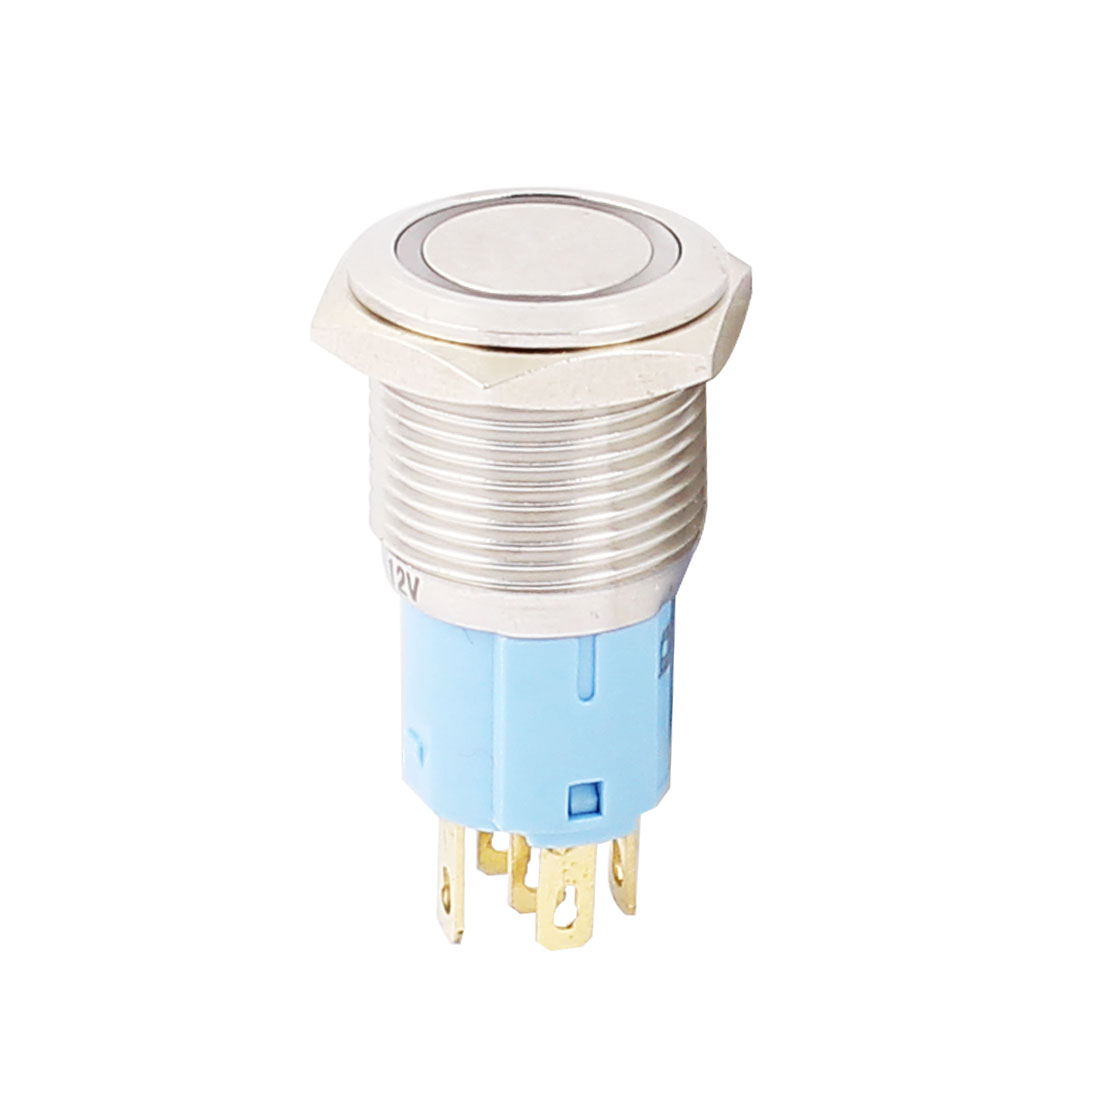 12V 16mm Thread Dia Blue LED Angle Eyes Momentary Metal Pushbutton Power Switch